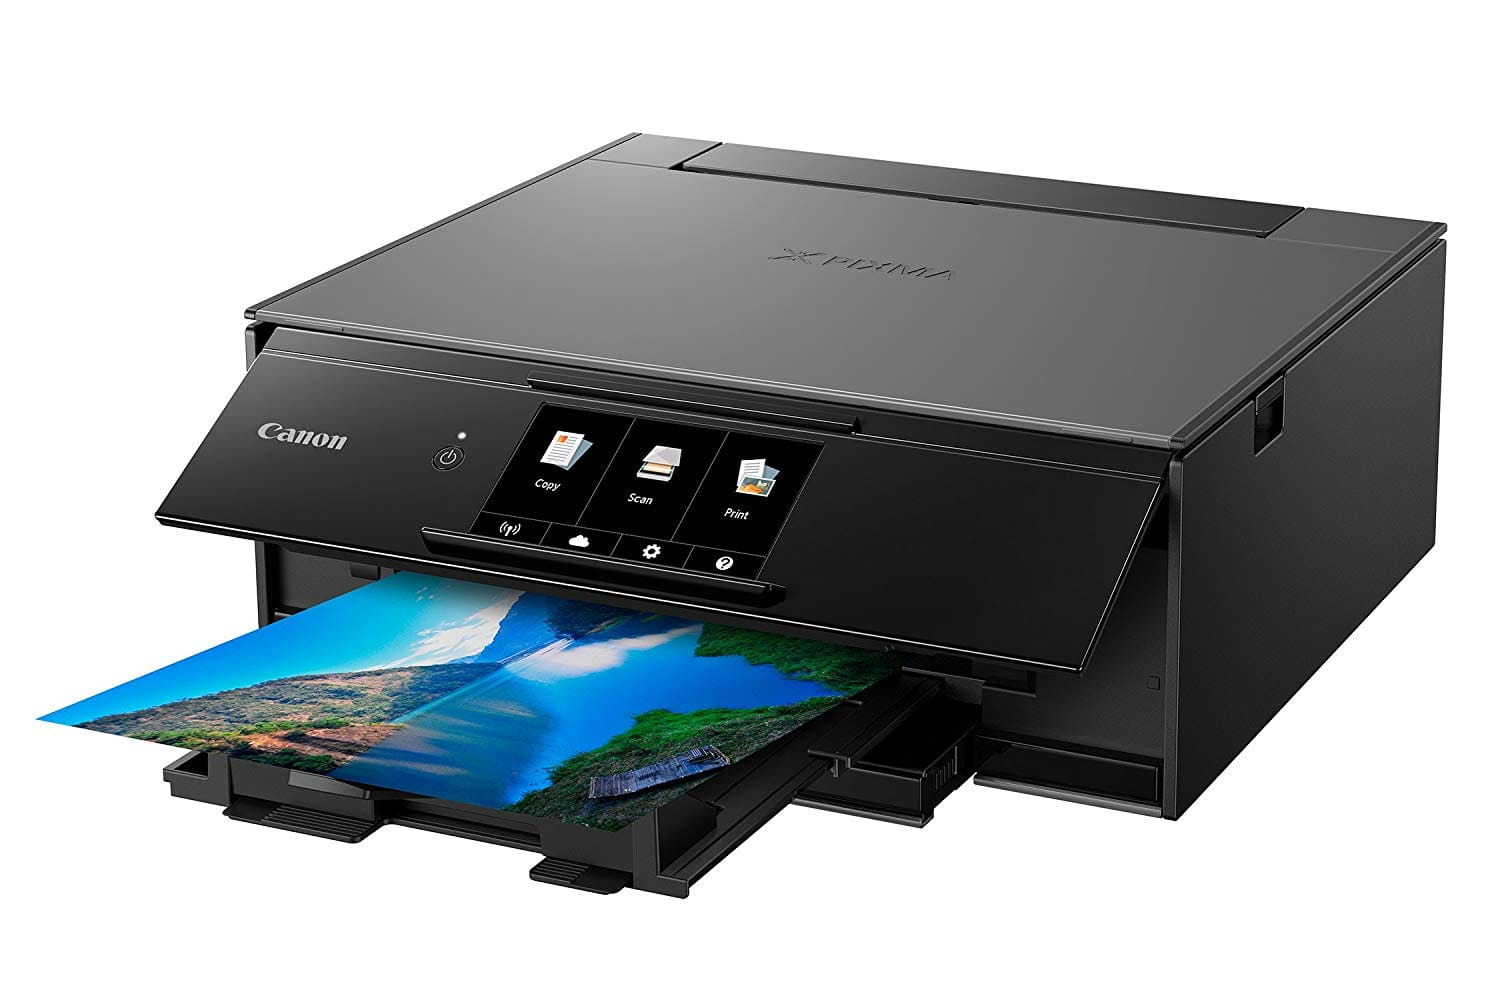 f6f1c75377f4 Canon TS9120 Wireless All-In-One Printer with Scanner and Copier: Mobile  and Tablet Printing, with Airprint(TM) and Google Cloud Print compatible,  ...